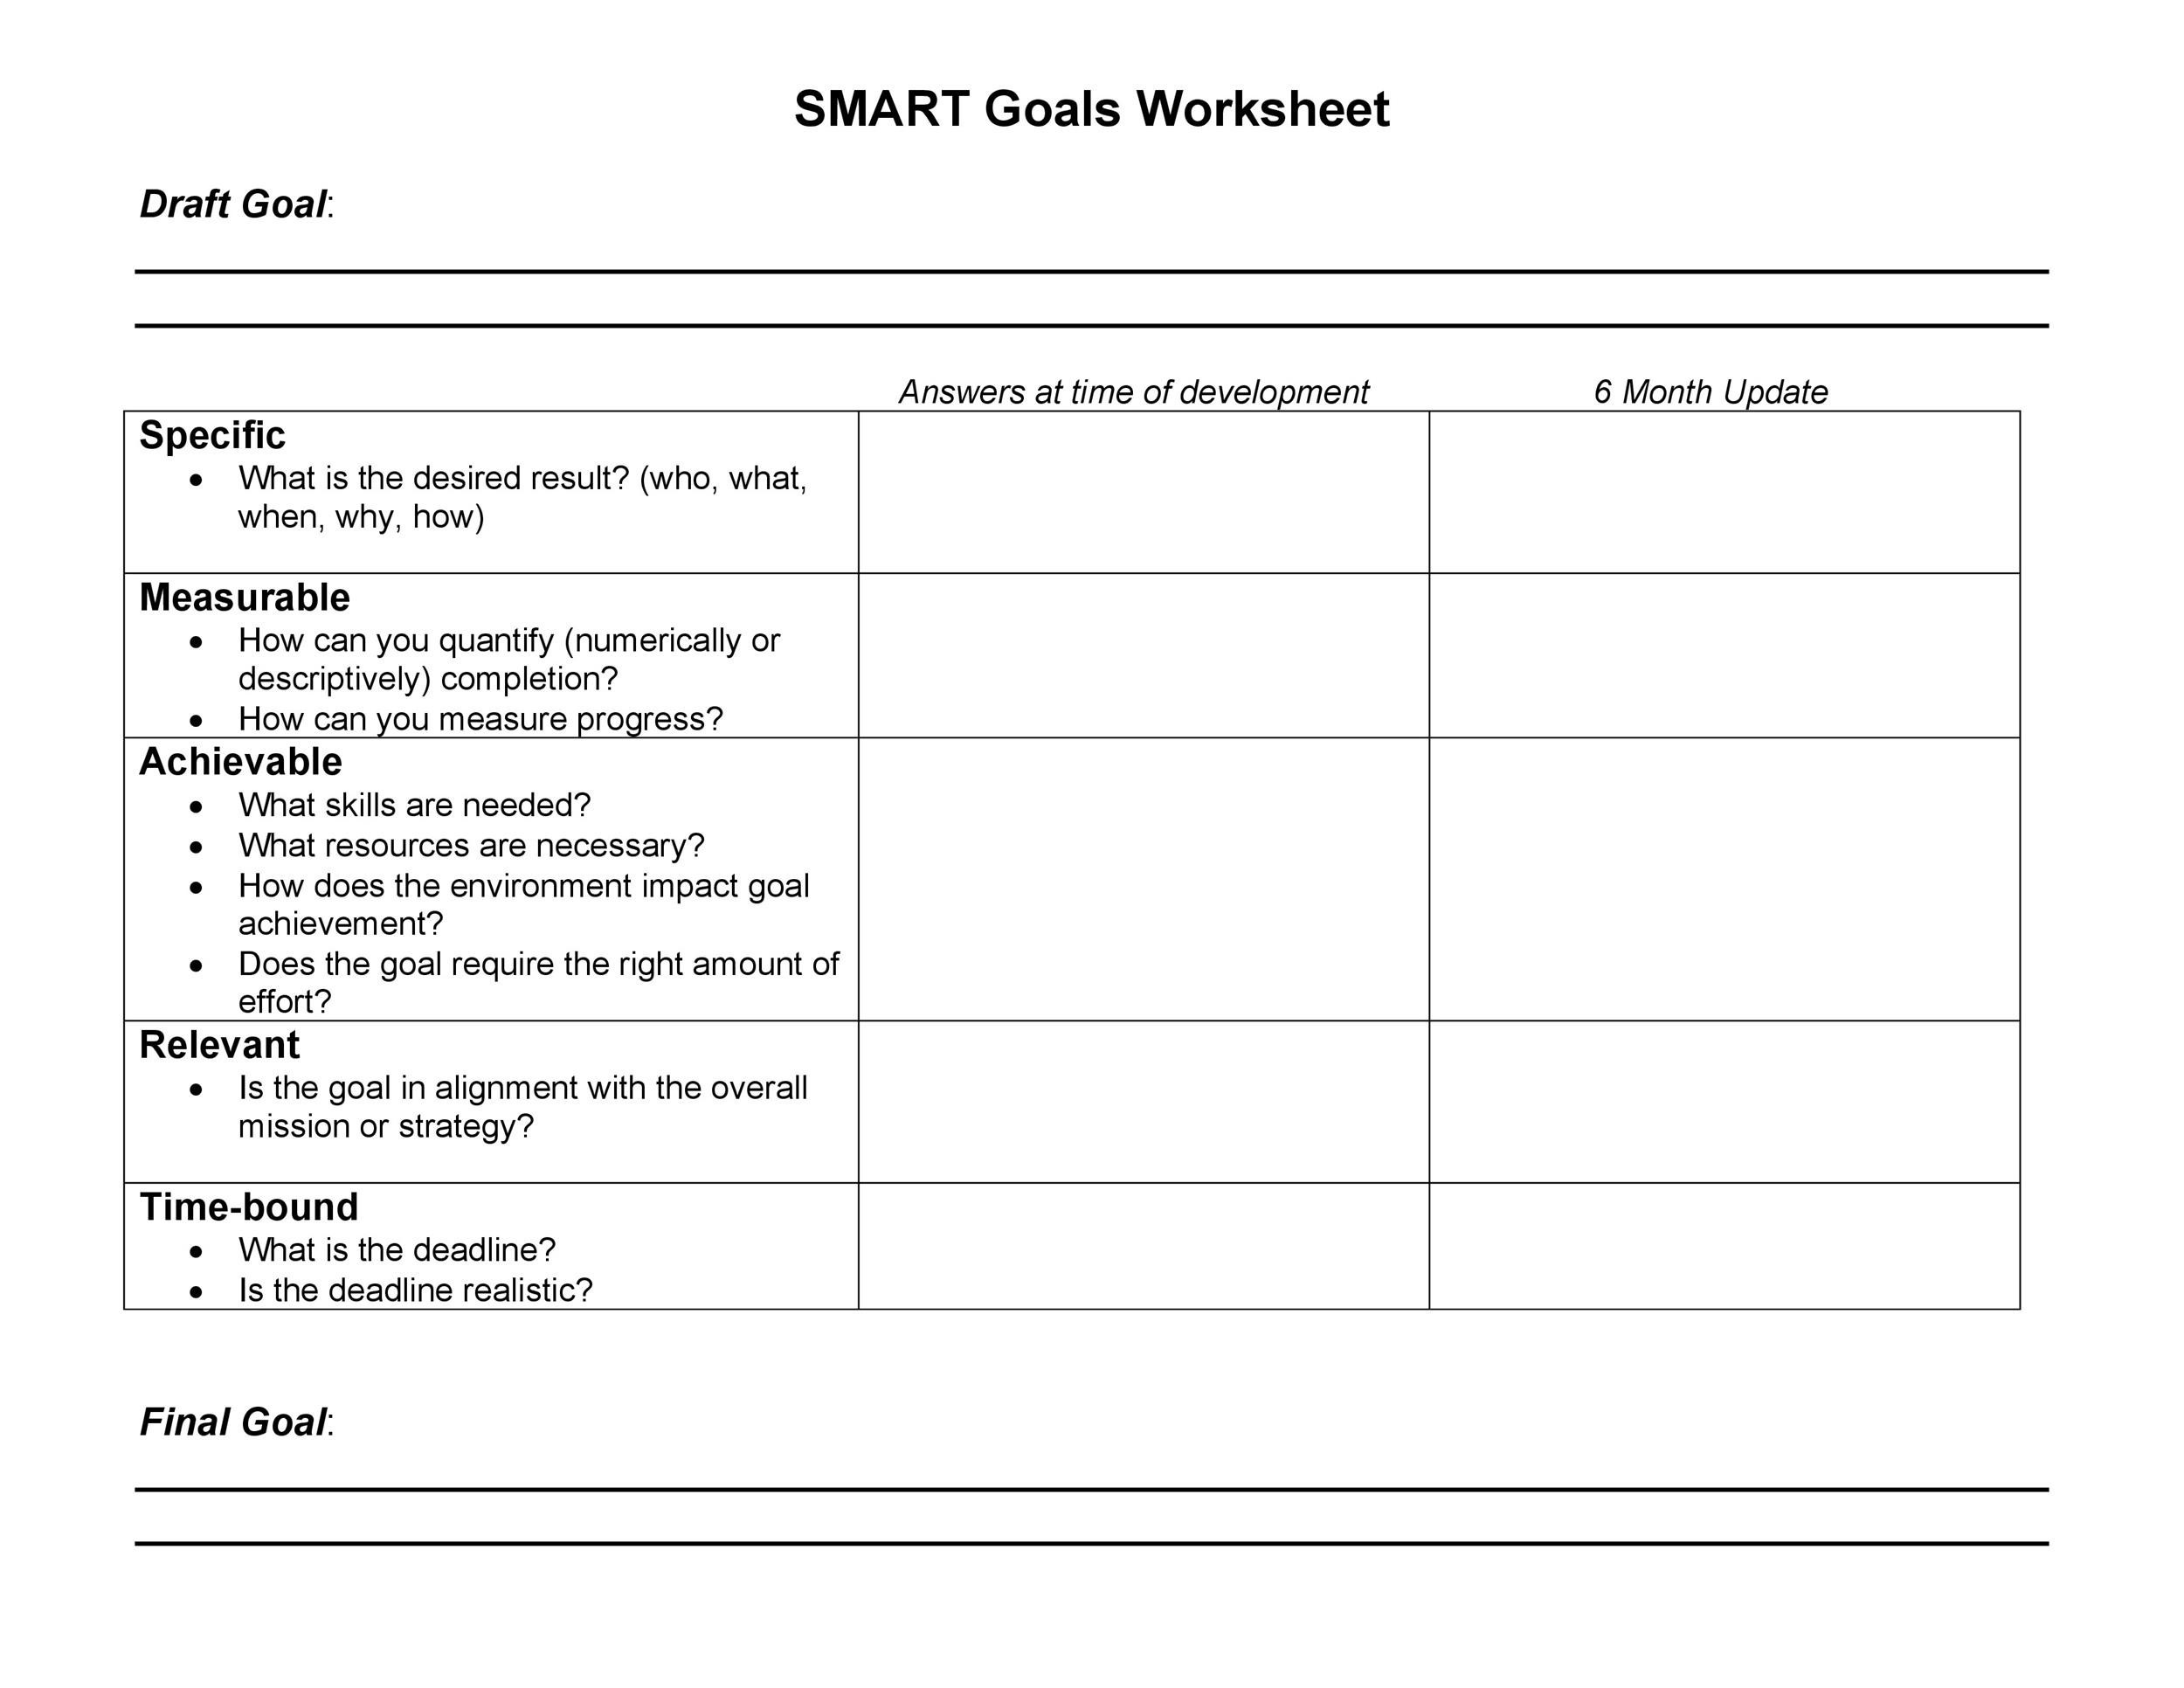 48 Smart Goals Templates Examples Worksheets ᐅ Template Lab